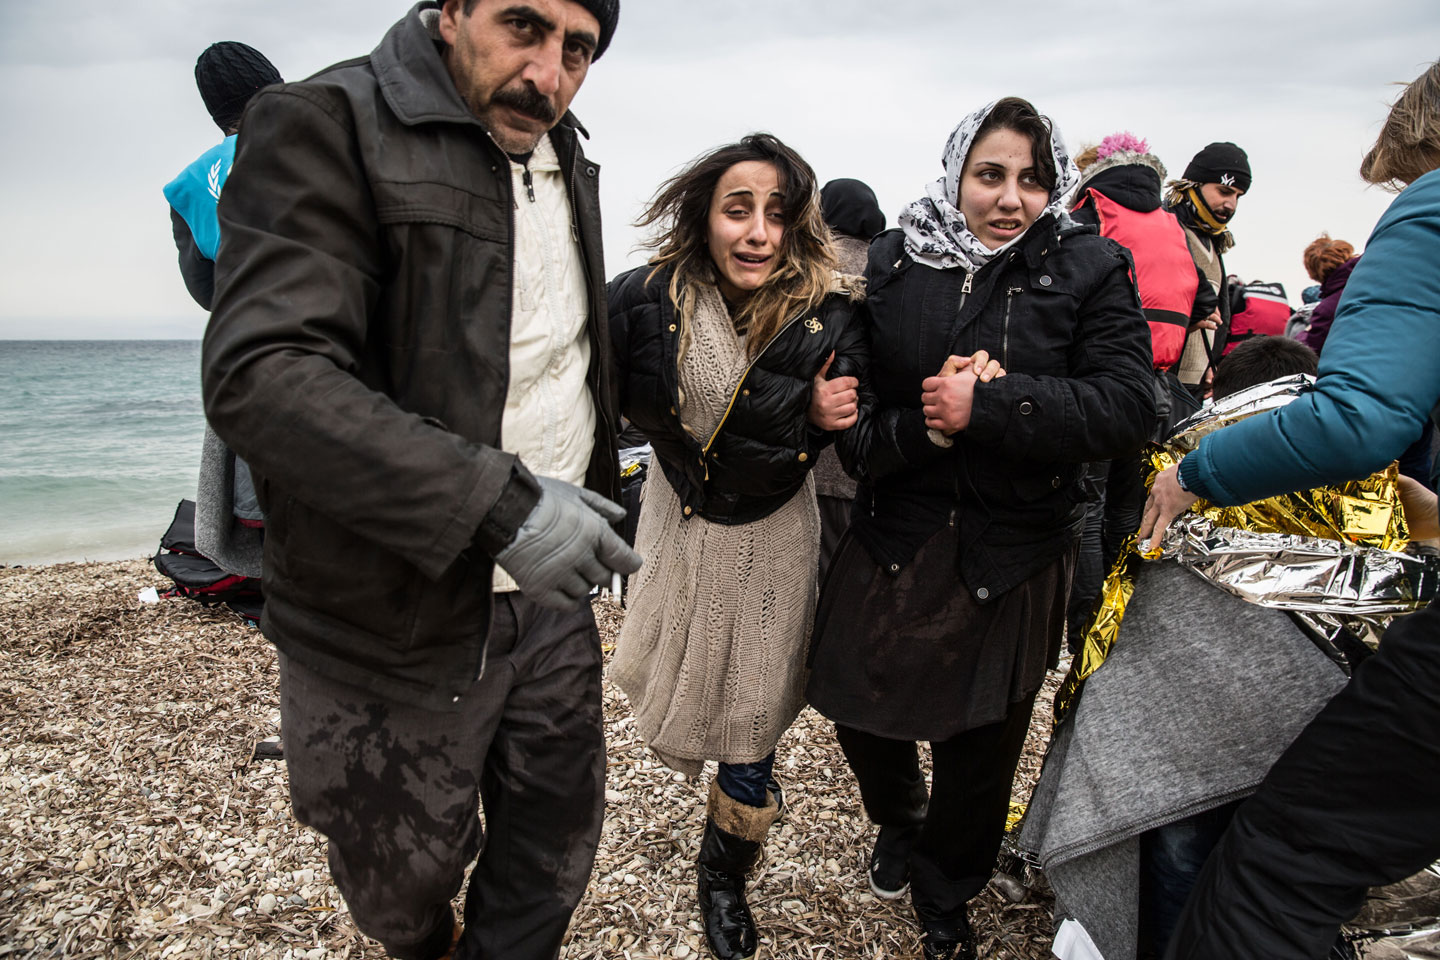 photographer: Hereward Holland | A family of refugees help a distressed woman ashore on the Greek island of Lesvos.